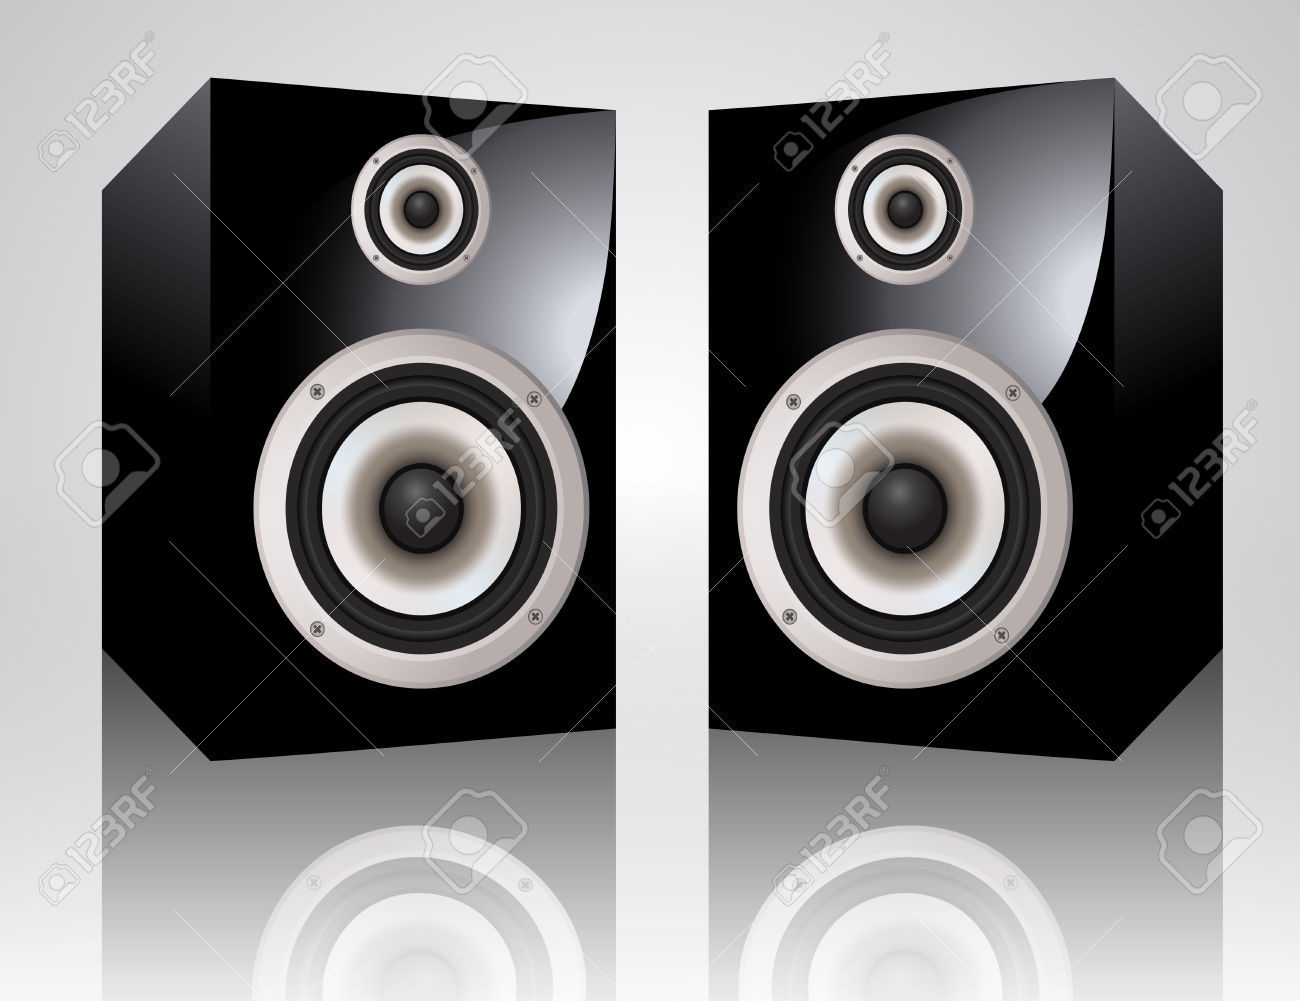 Realistic Audio Speakers Royalty Free Cliparts, Vectors, And Stock.